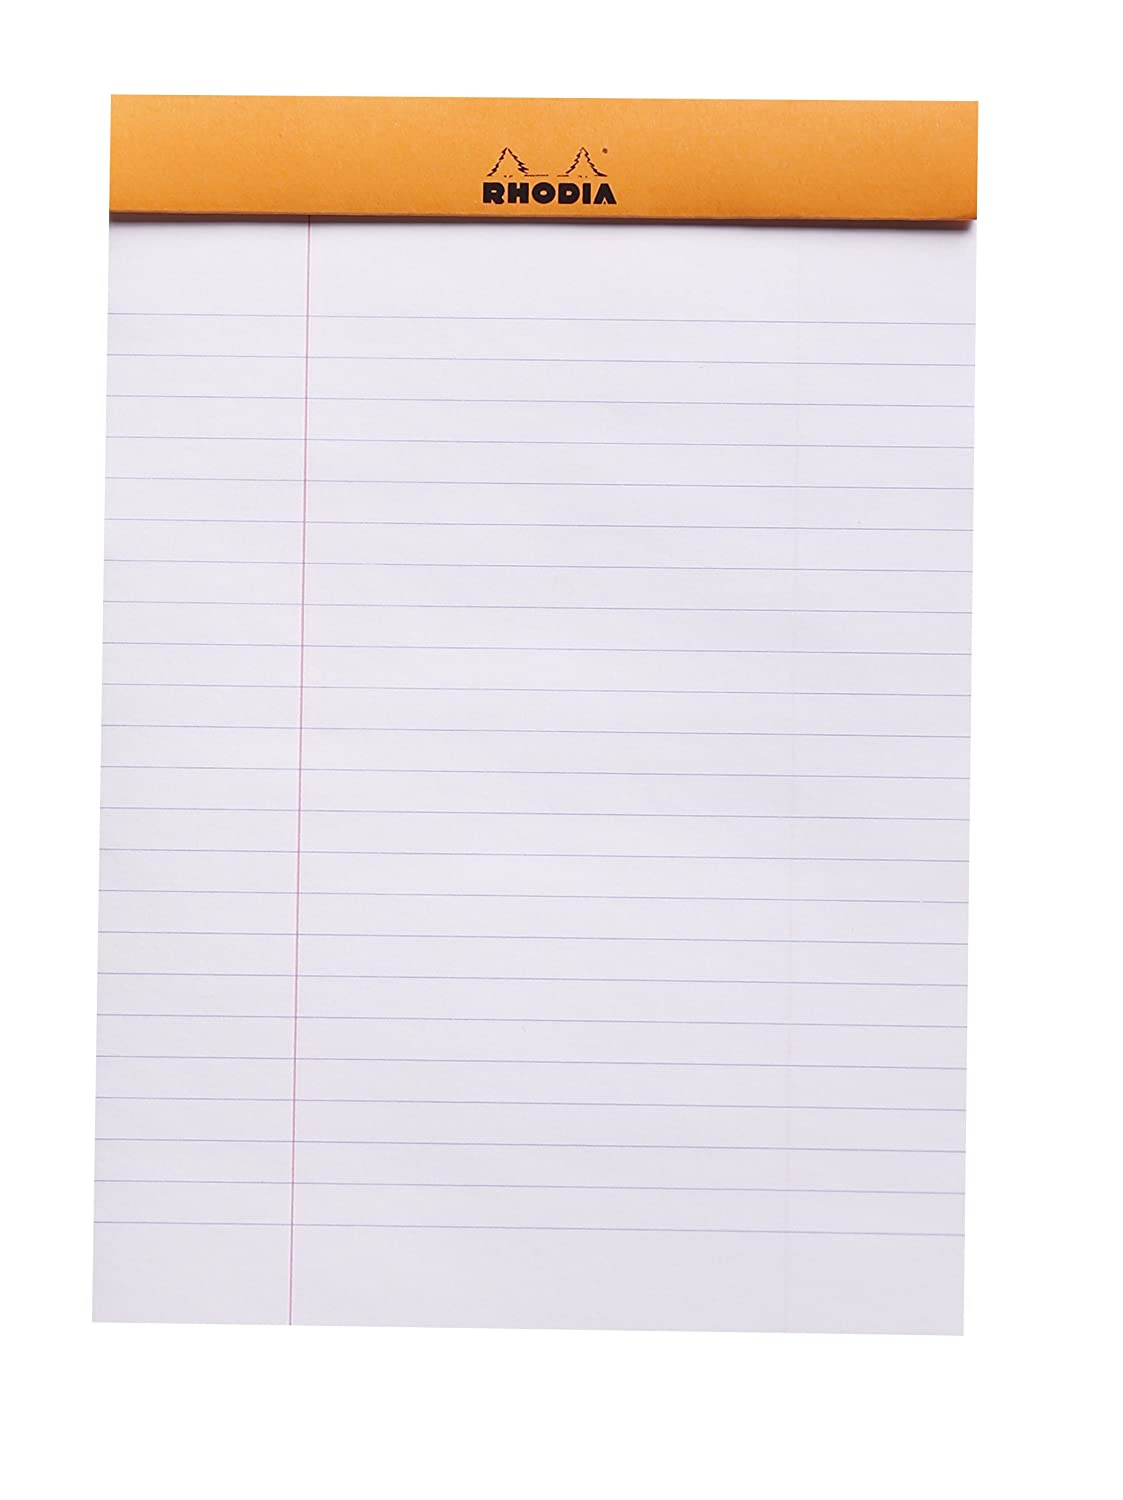 amazon com rhodia classic french paper pads ruled with margin 6